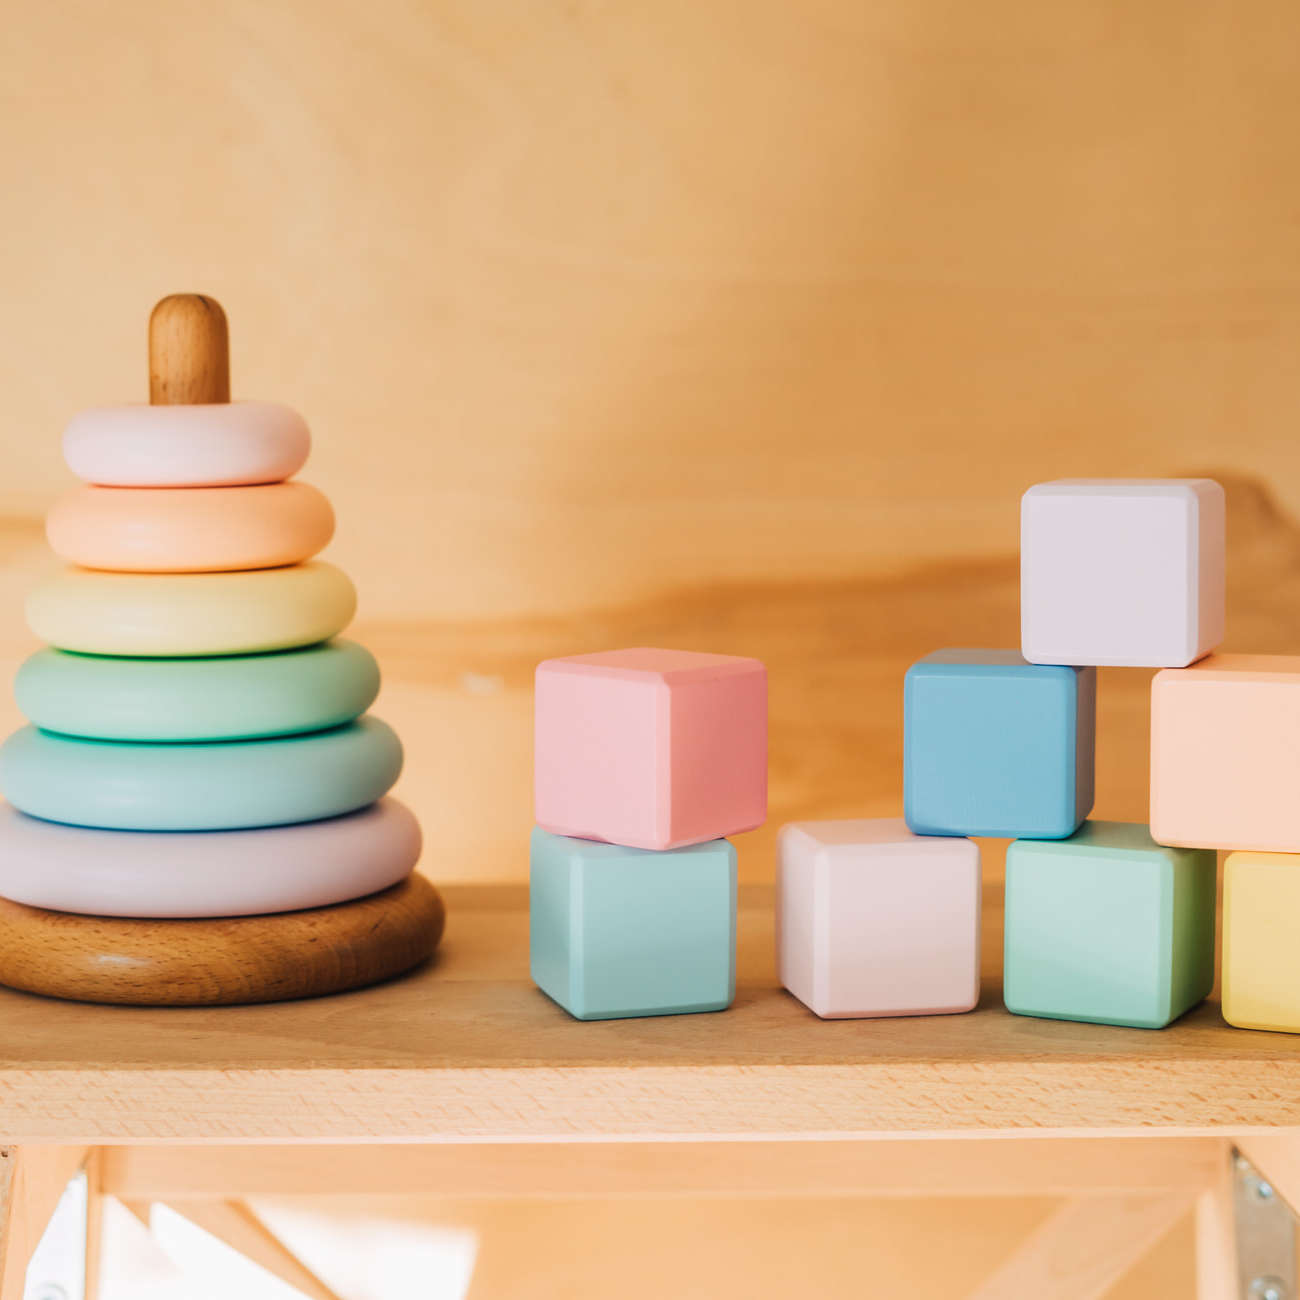 Pyramid,And,Cubes,Of,Wood,Are,Painted,In,Special,Paint.